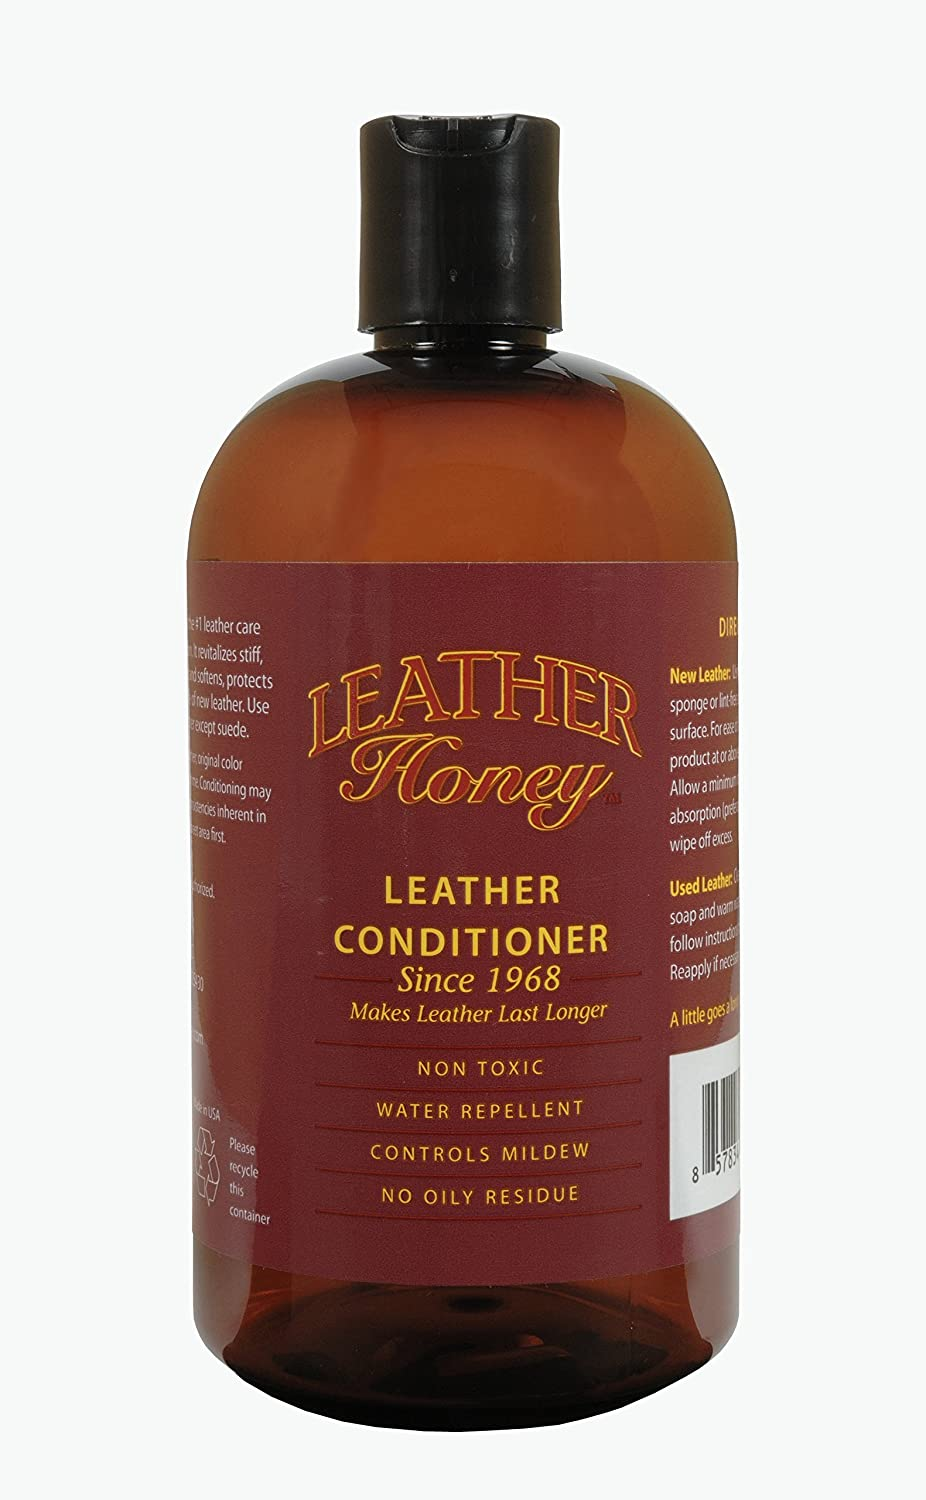 Best Leather Furniture Cleaner 2017 - Reviews and Top Picks